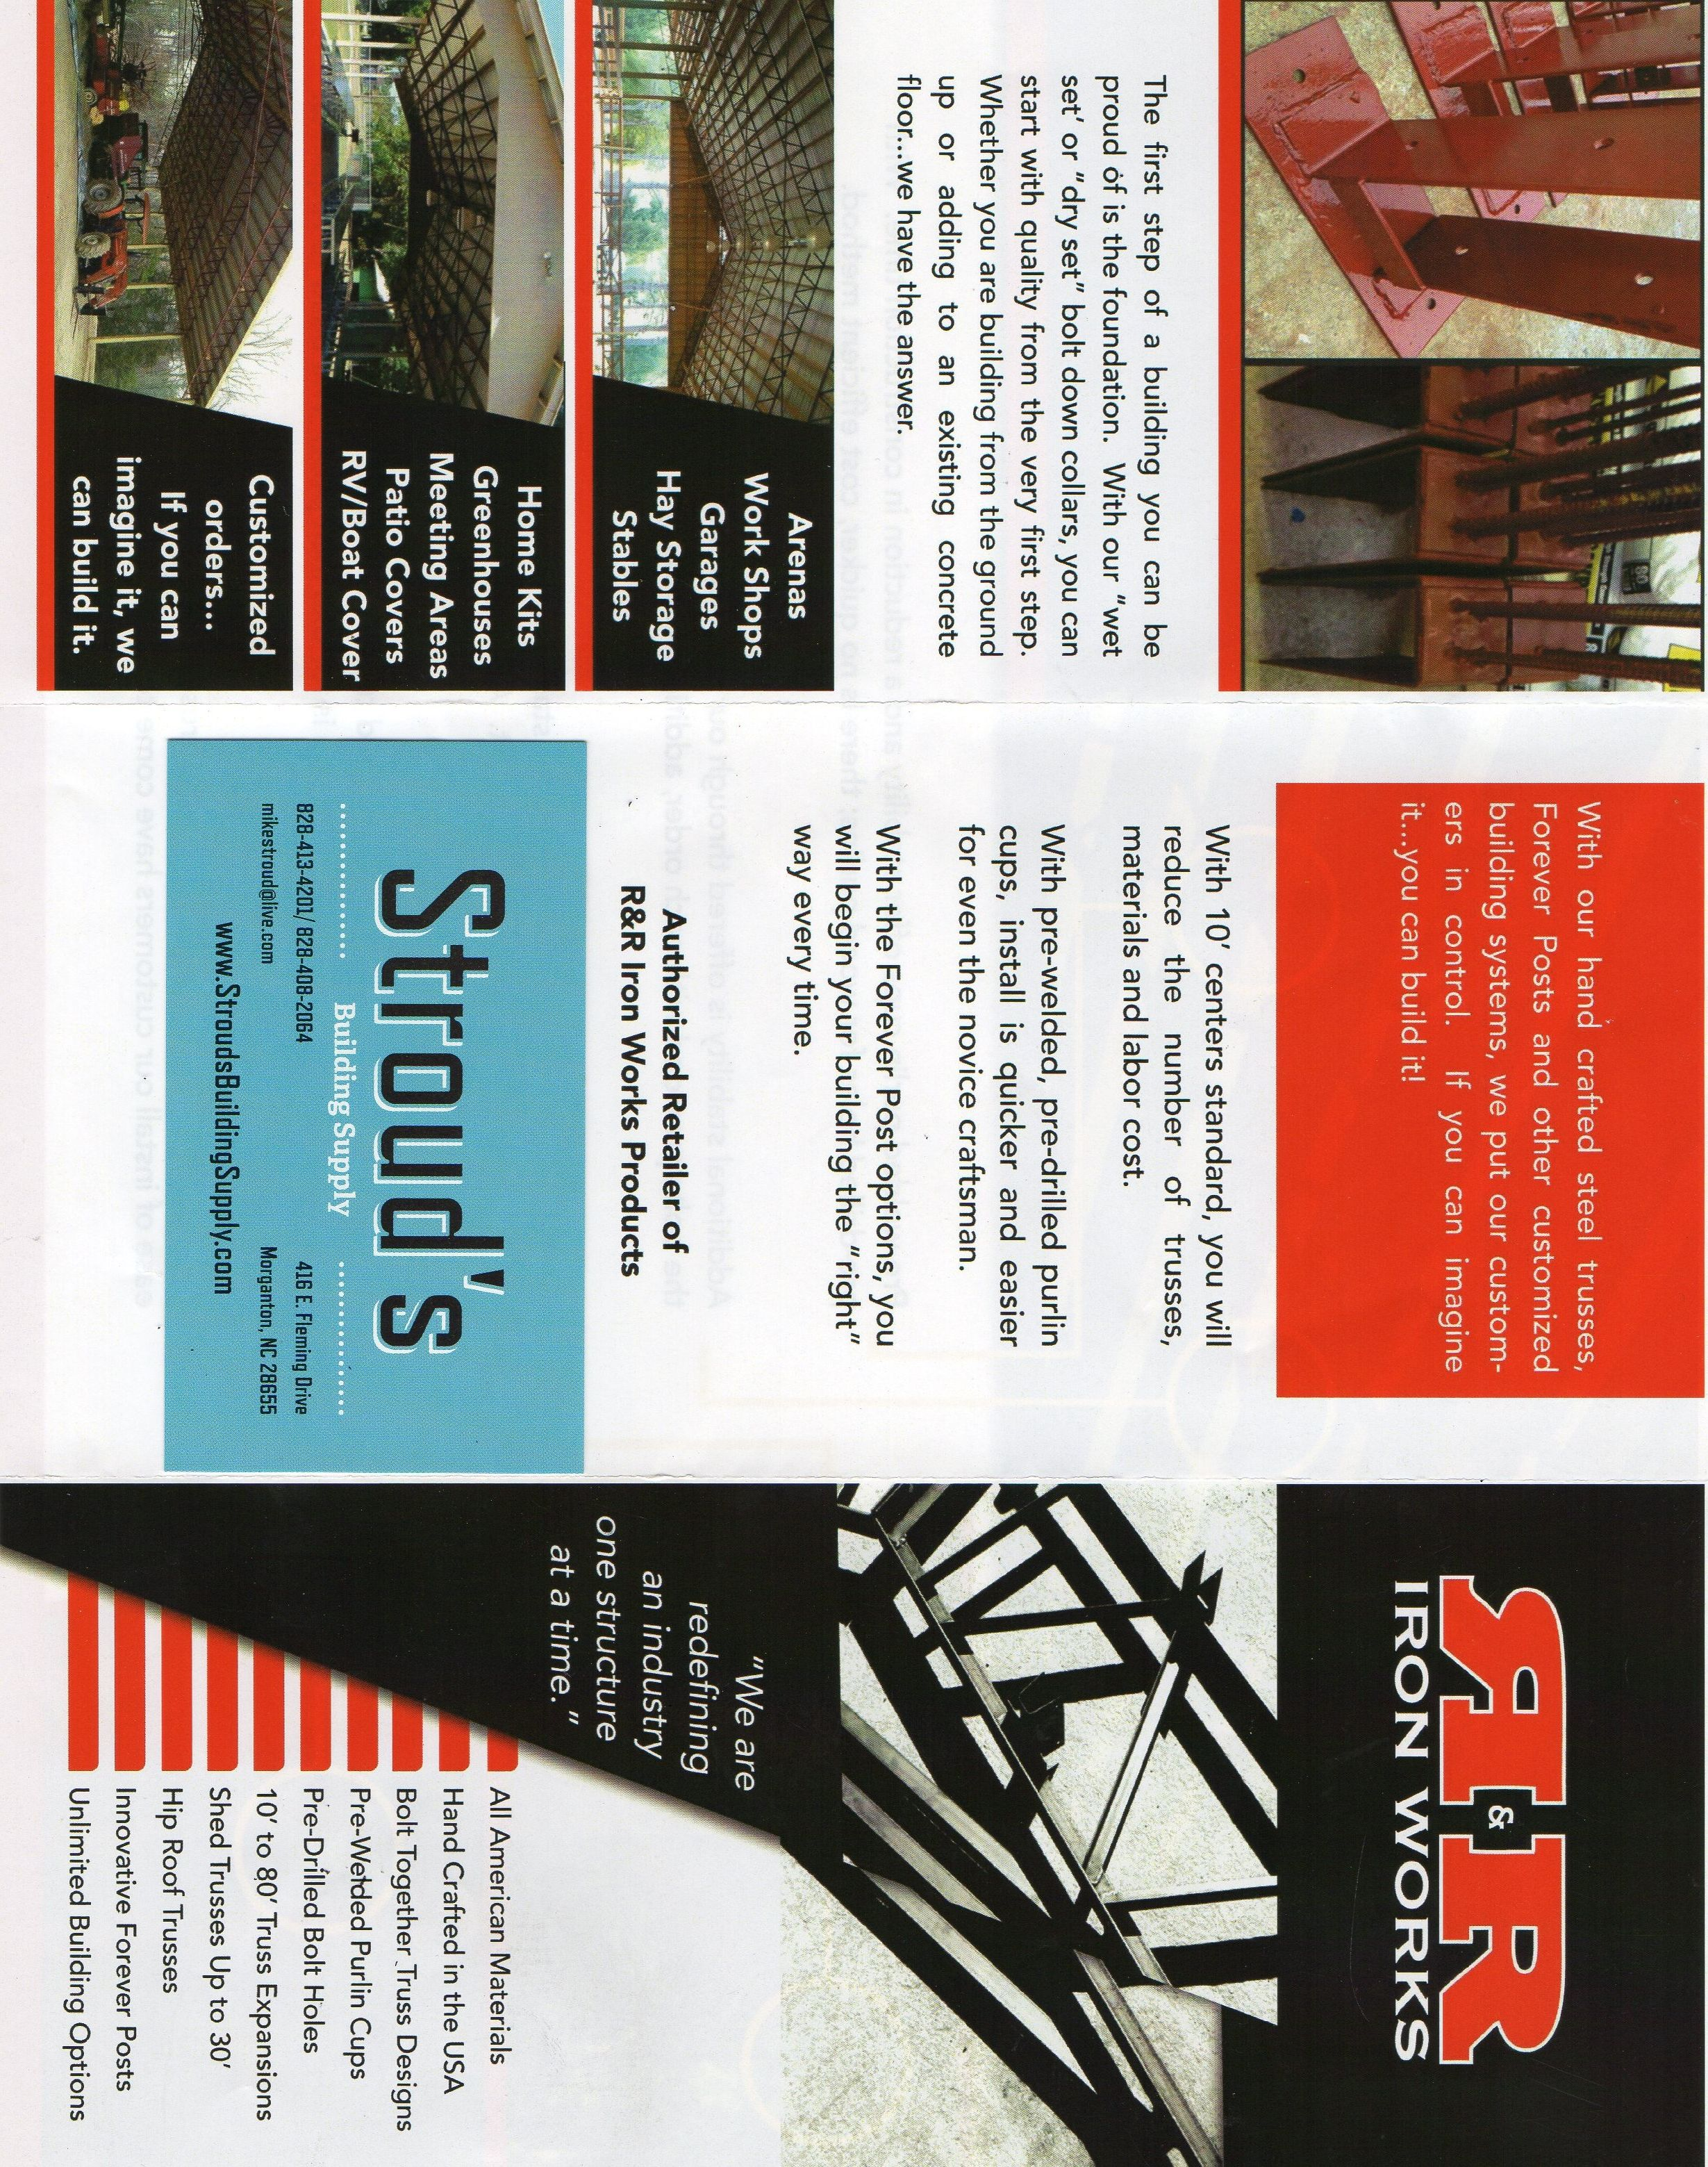 Here At Strouds Building Supply We Are An Authorized Retailer Of R Iron Works Products